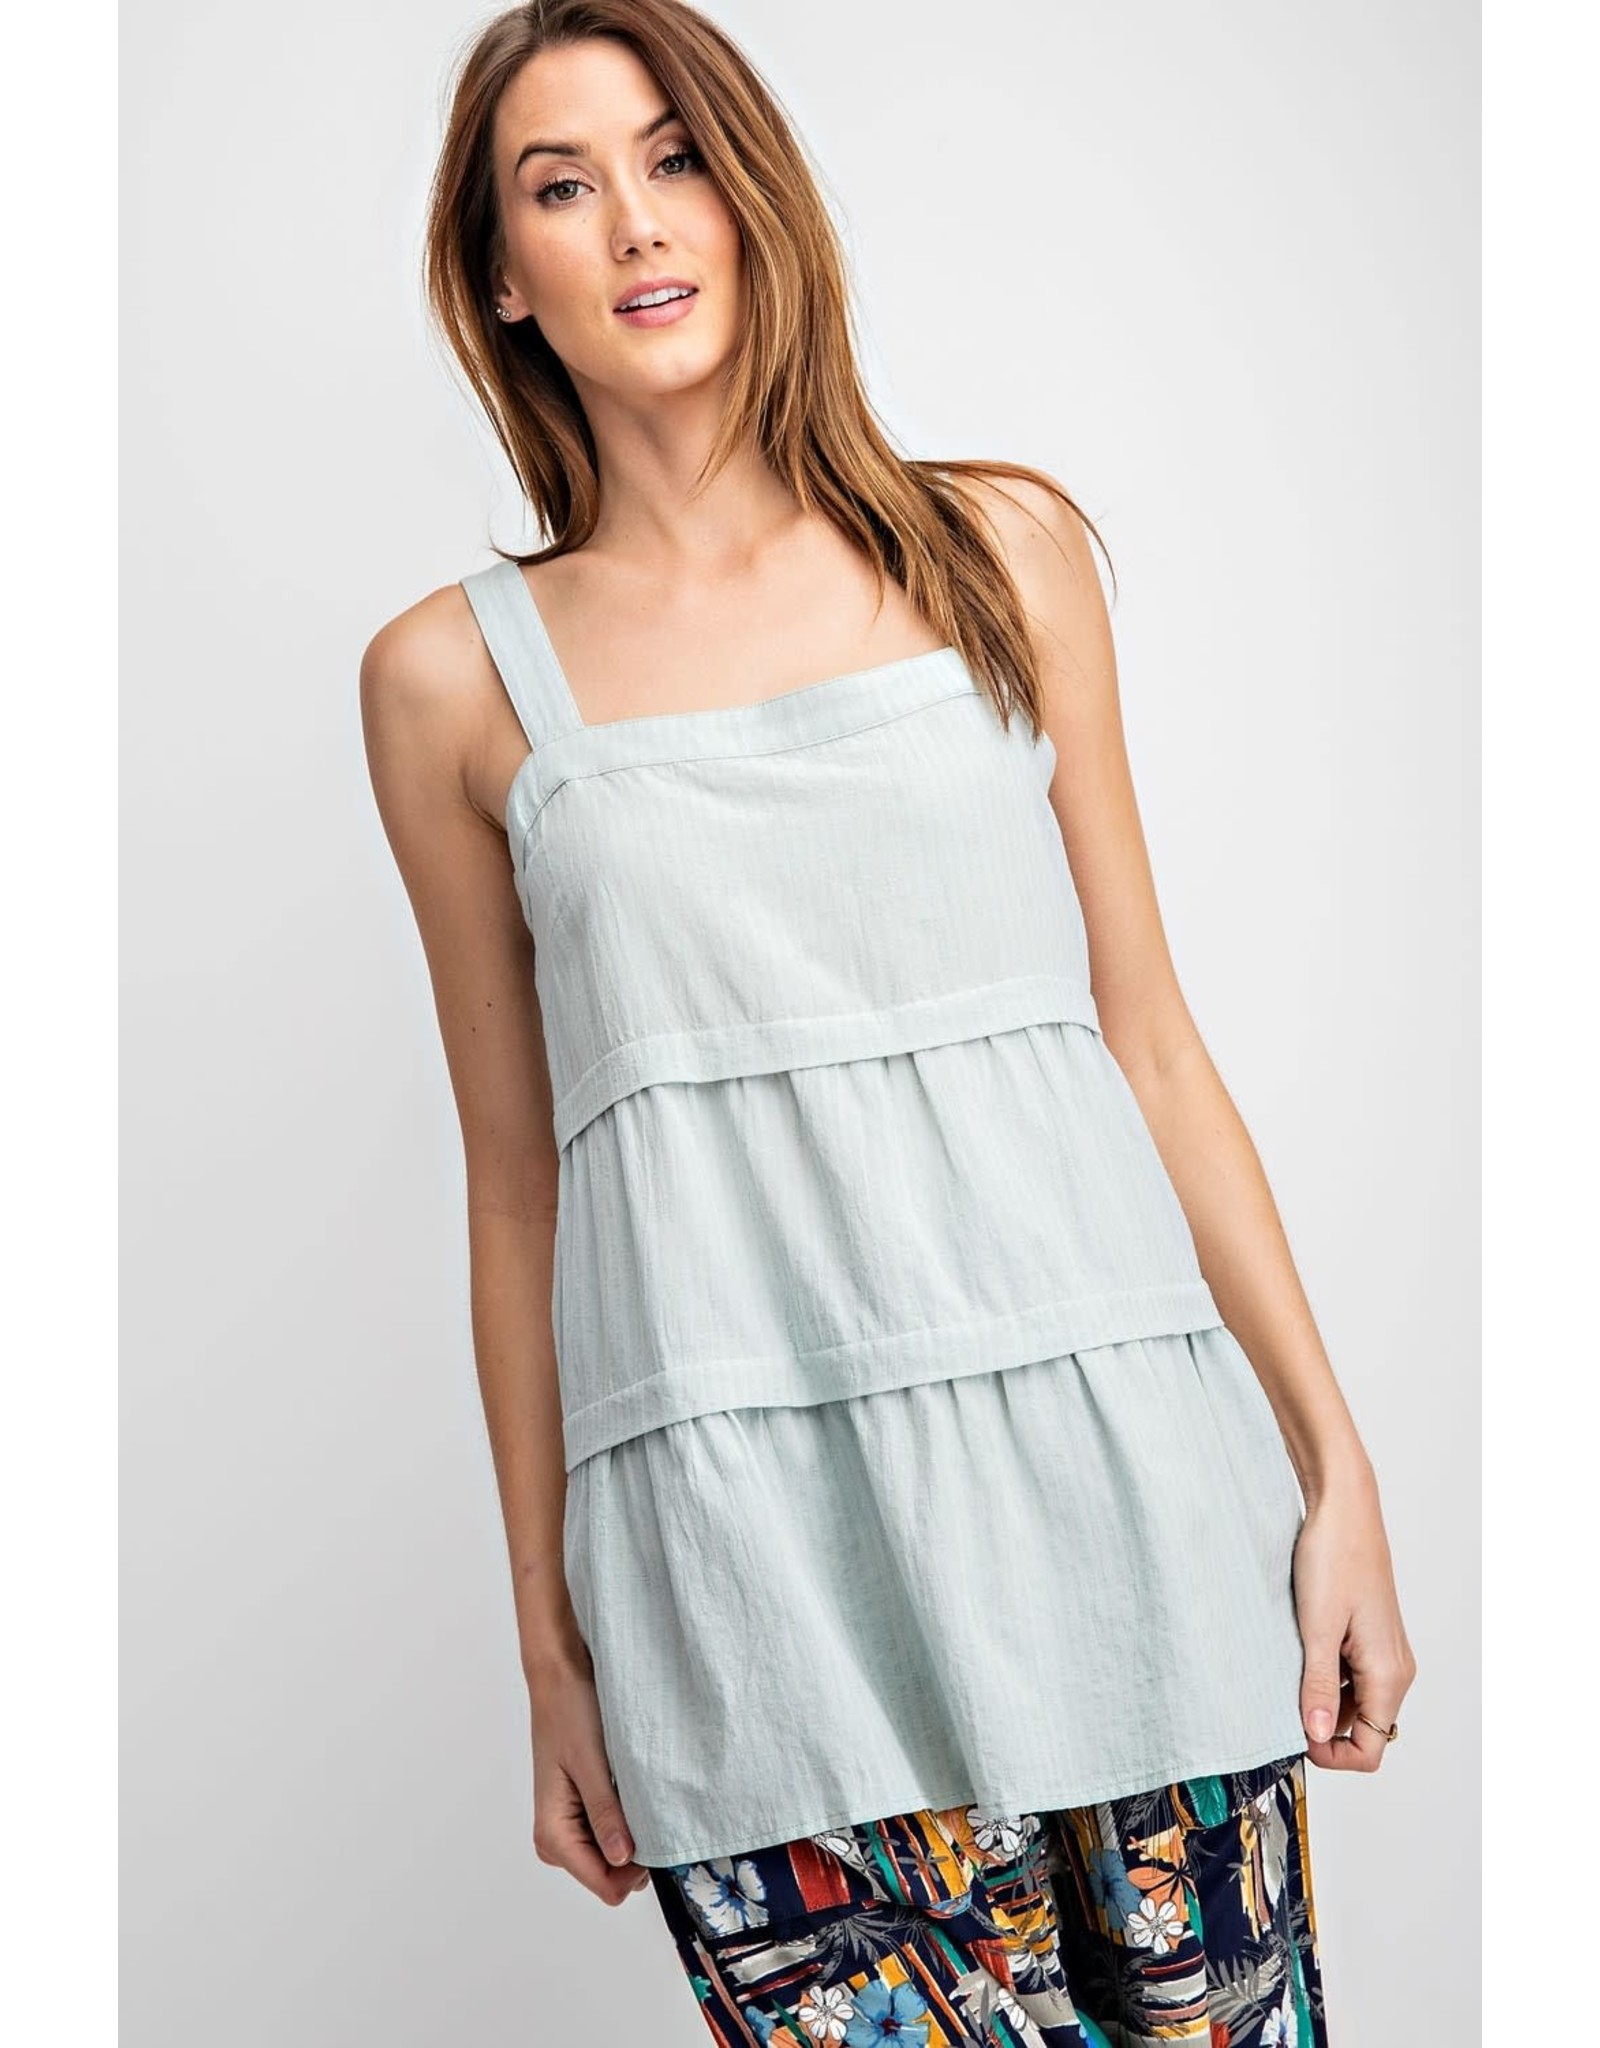 Easel Textured Square Neckline Ruffle Top - Faded Sage